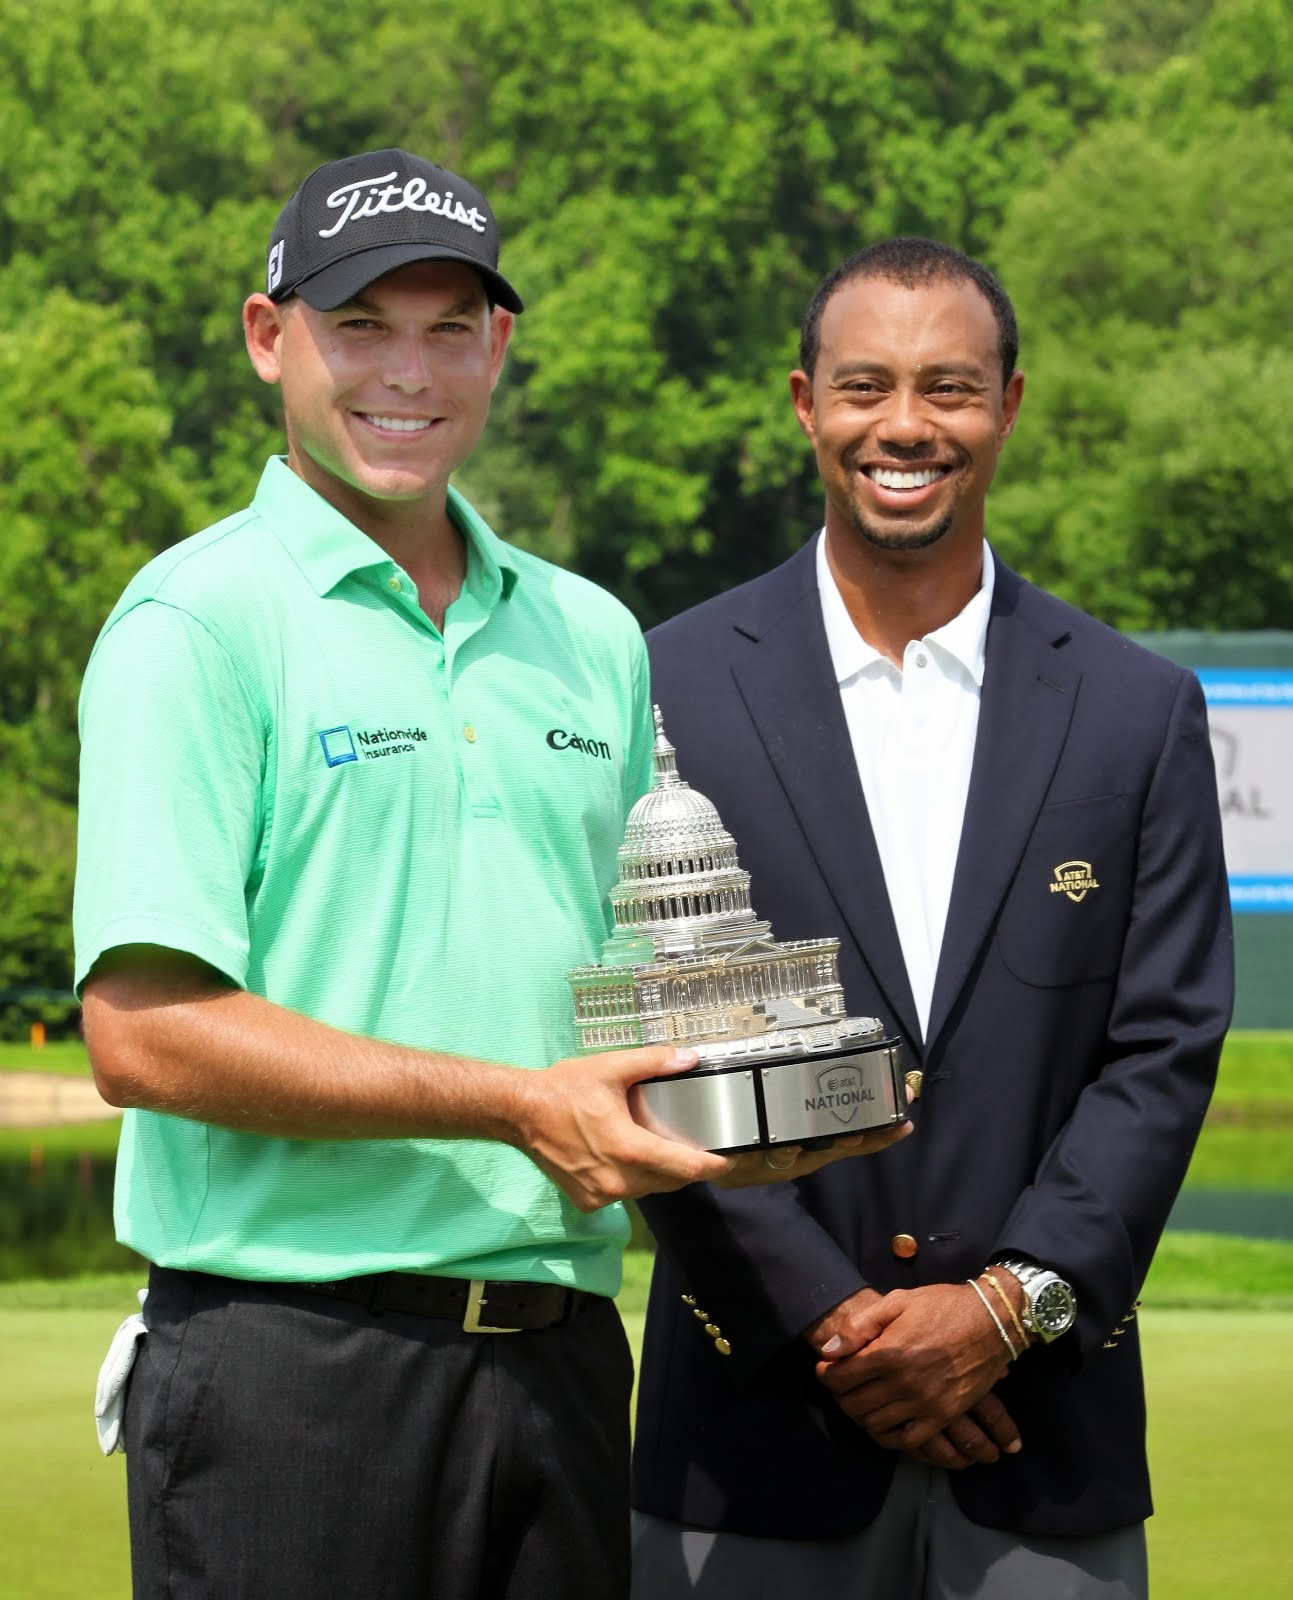 TIGER with the winner Bill Haas at the AT&T National in D.C